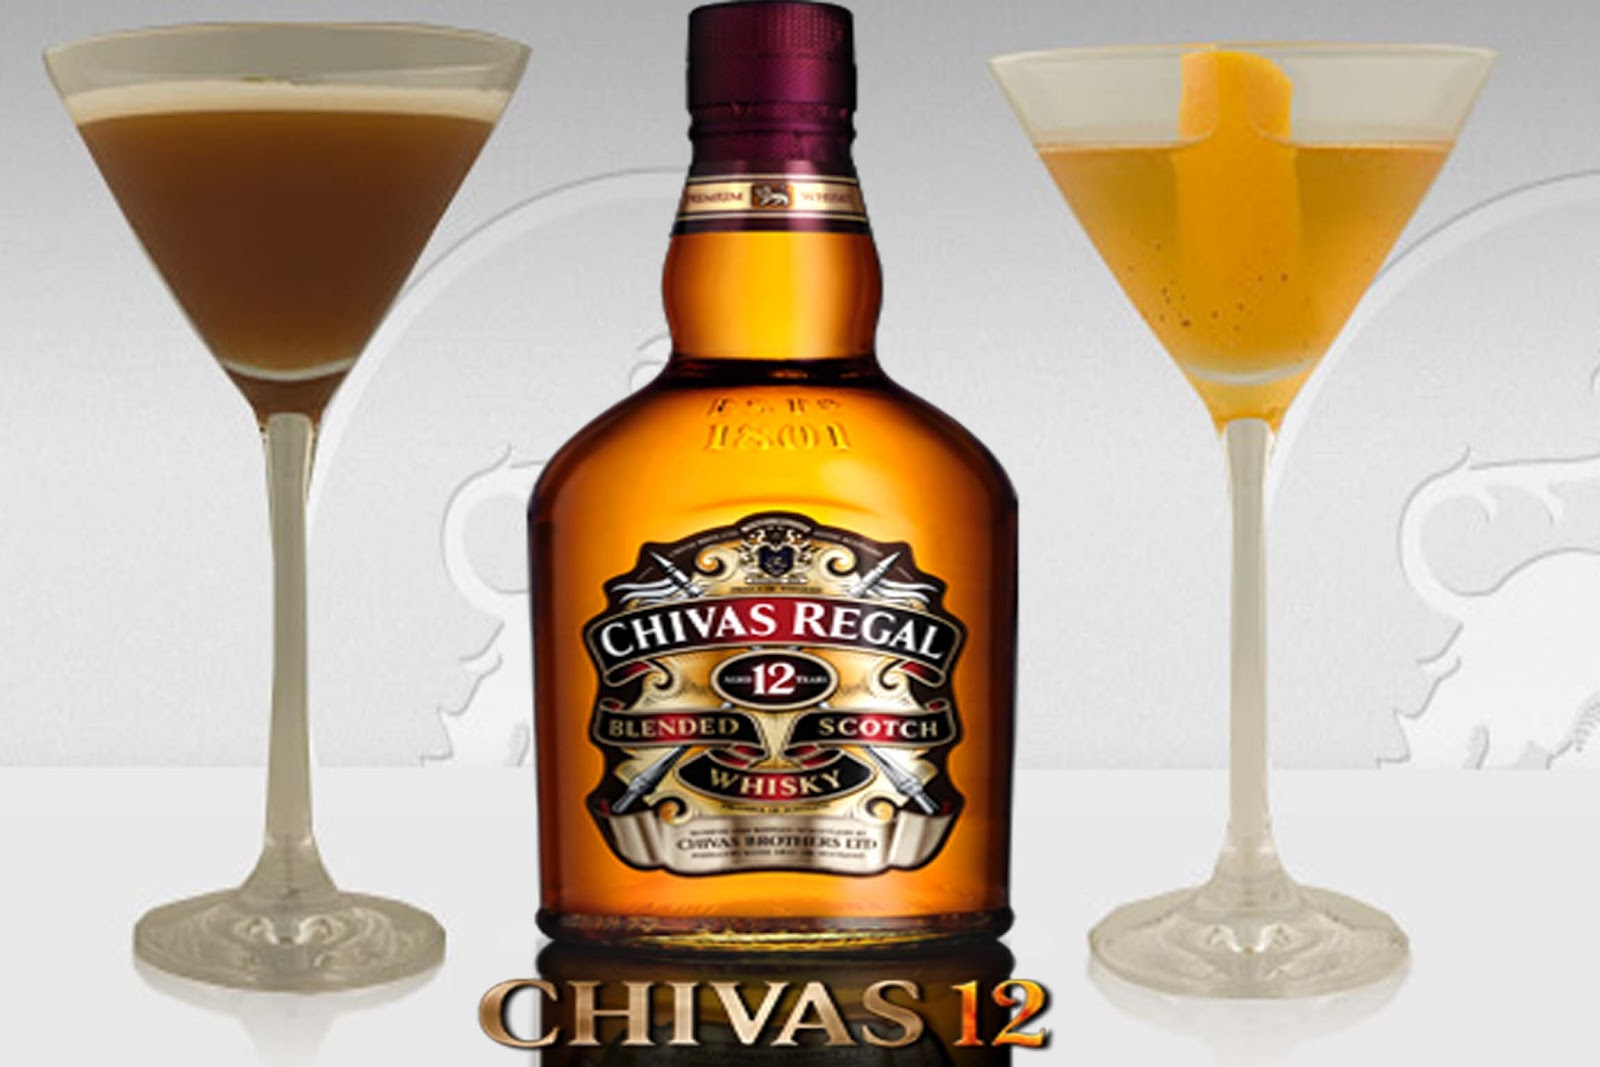 Whisky chivas 12 a os y 2 cocktails en copa martini for Copas para whisky